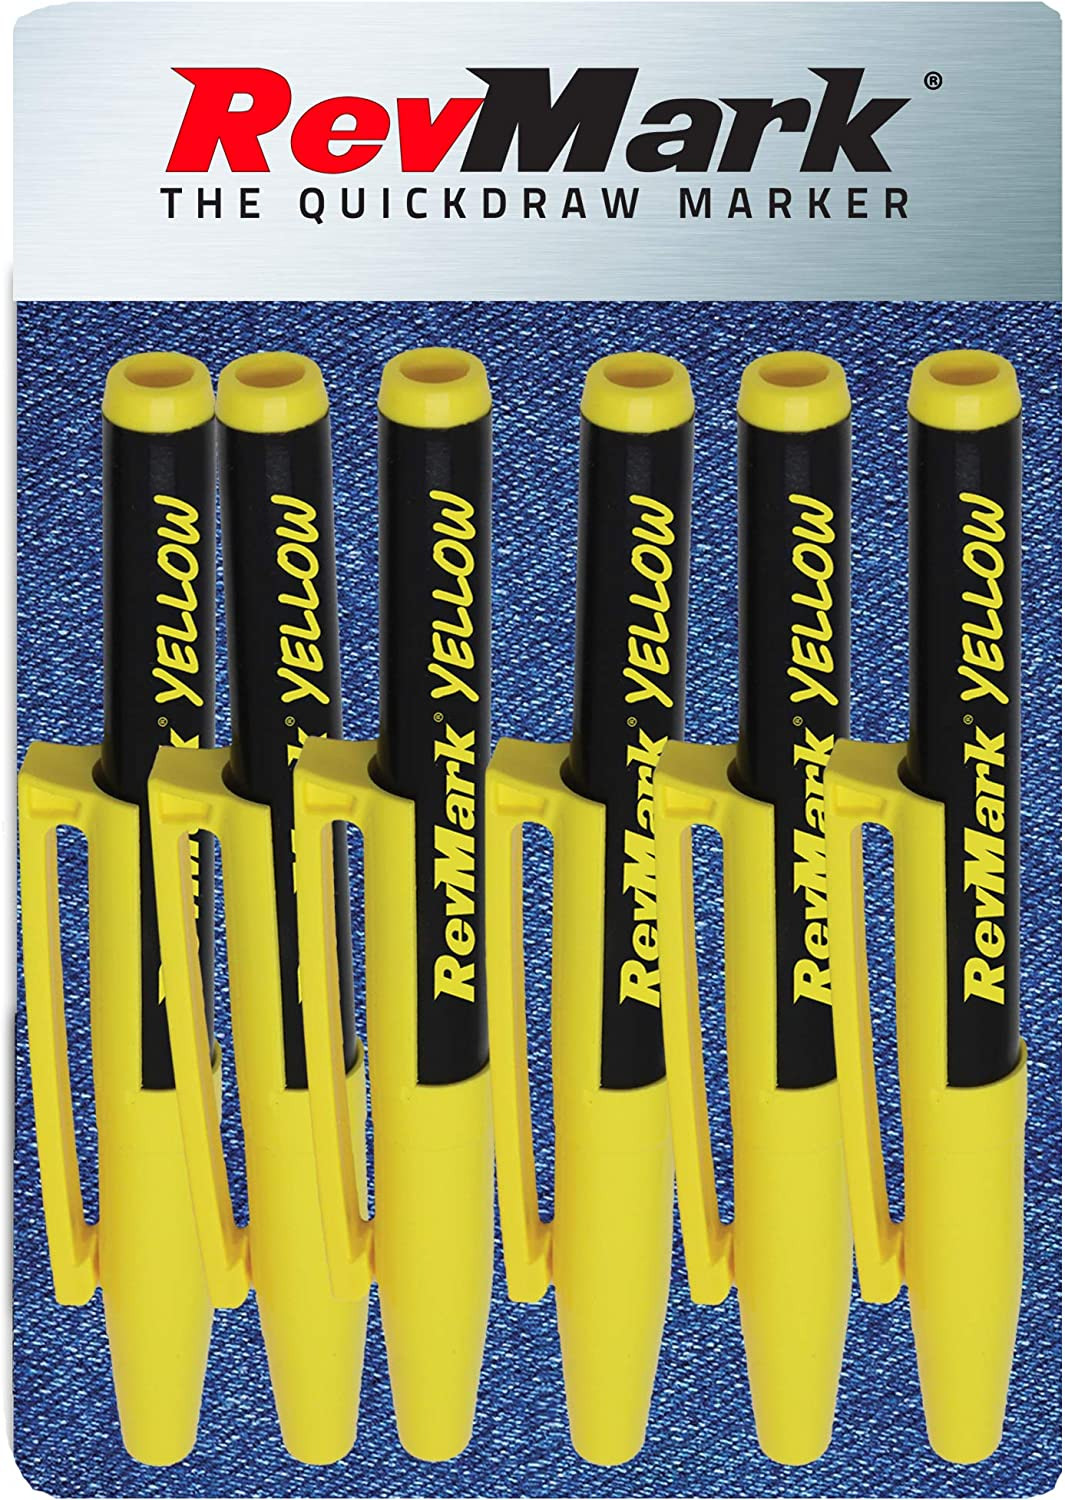 RevMark Industrial Marker - Yellow Ink - Standard Tip - 6 Pack, Made in the USA. Bright Ink perfect for metal, pvc, pipe wood. Replaces paint marker